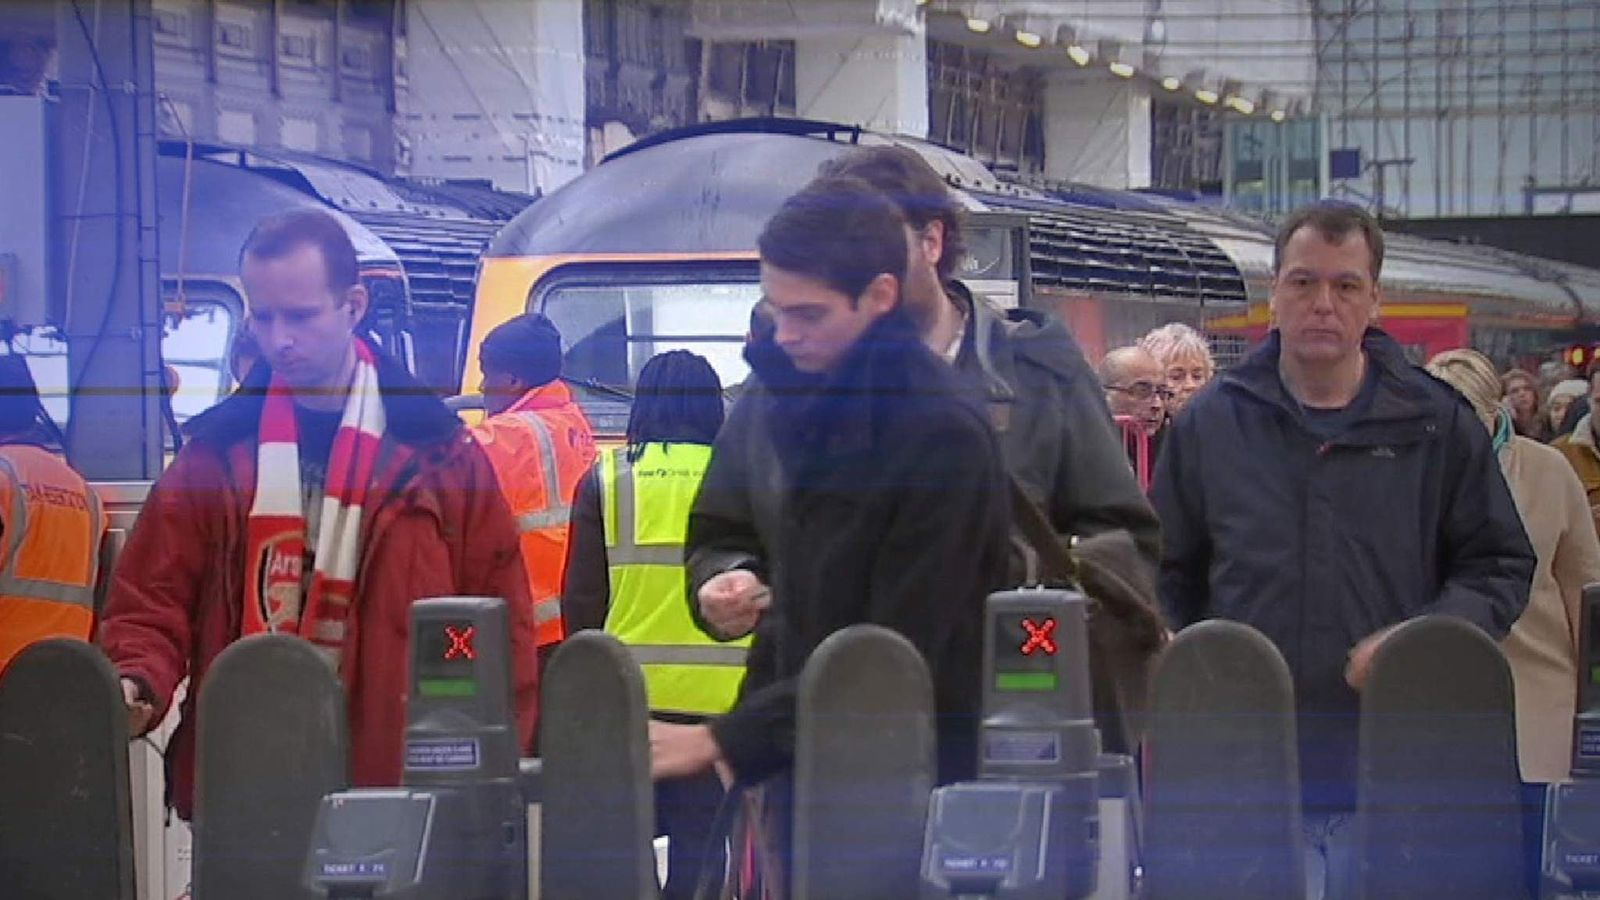 Passengers at Paddington Station as rail fares increase